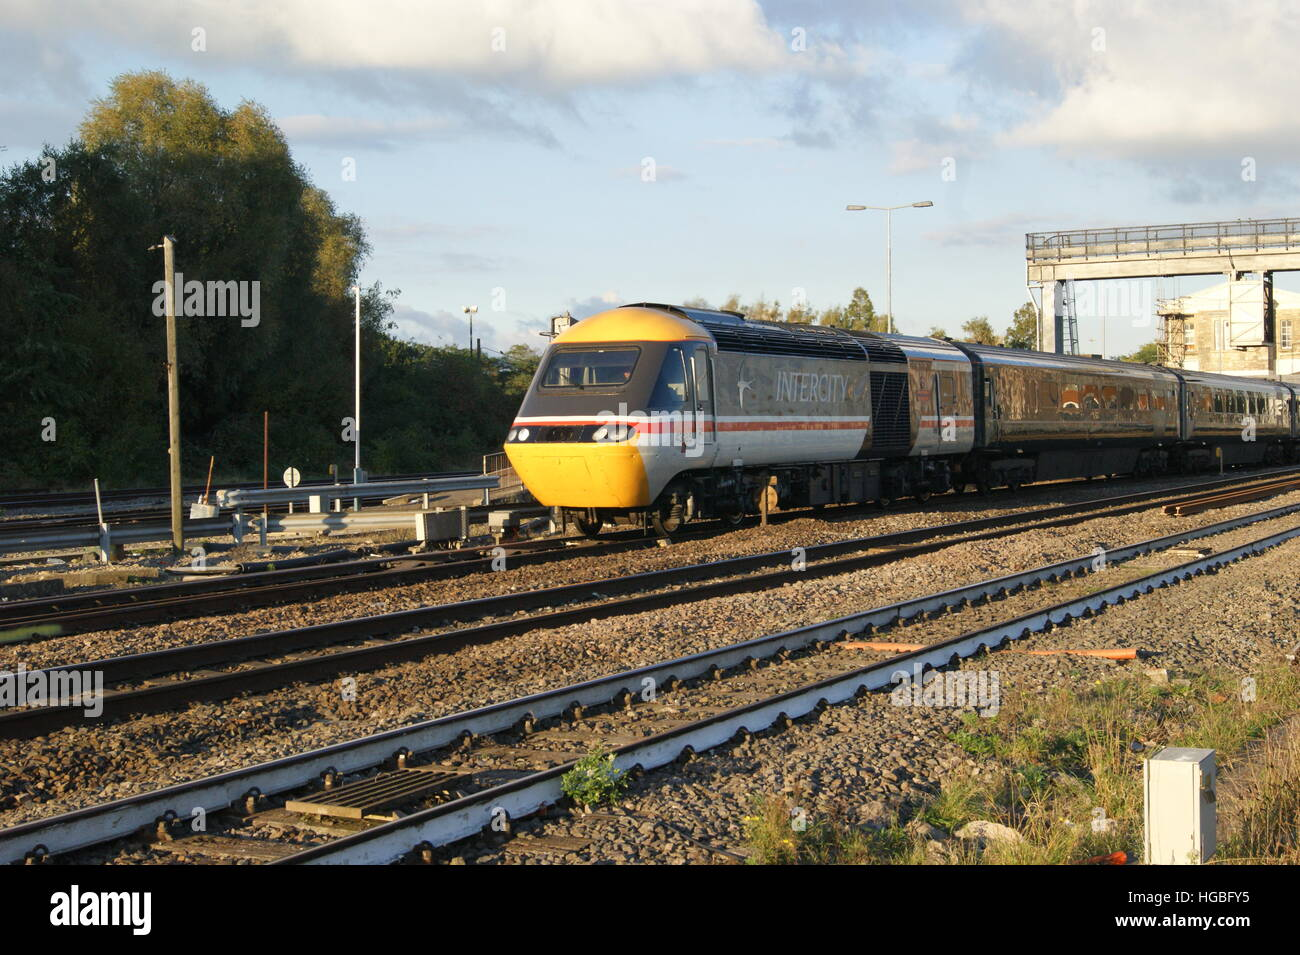 intercity swallow high resolution stock photography and images alamy https www alamy com stock photo hst locomotive no43185 departs platform 3 of swindon station in october 130561065 html